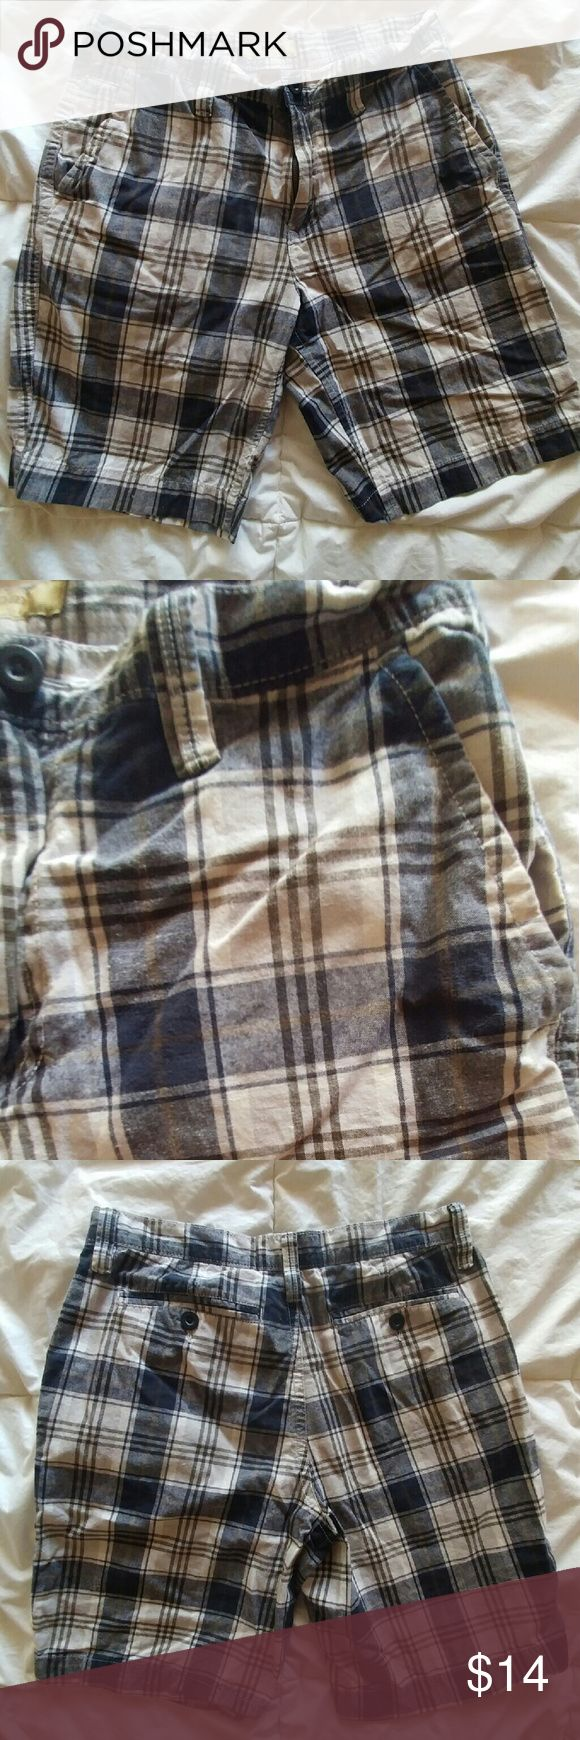 NWOT Men's Plaid Shorts Plaid shorts by Sonoma Similar size and style as J. Crew  Perfect condition  Polo also available J. Crew Shorts